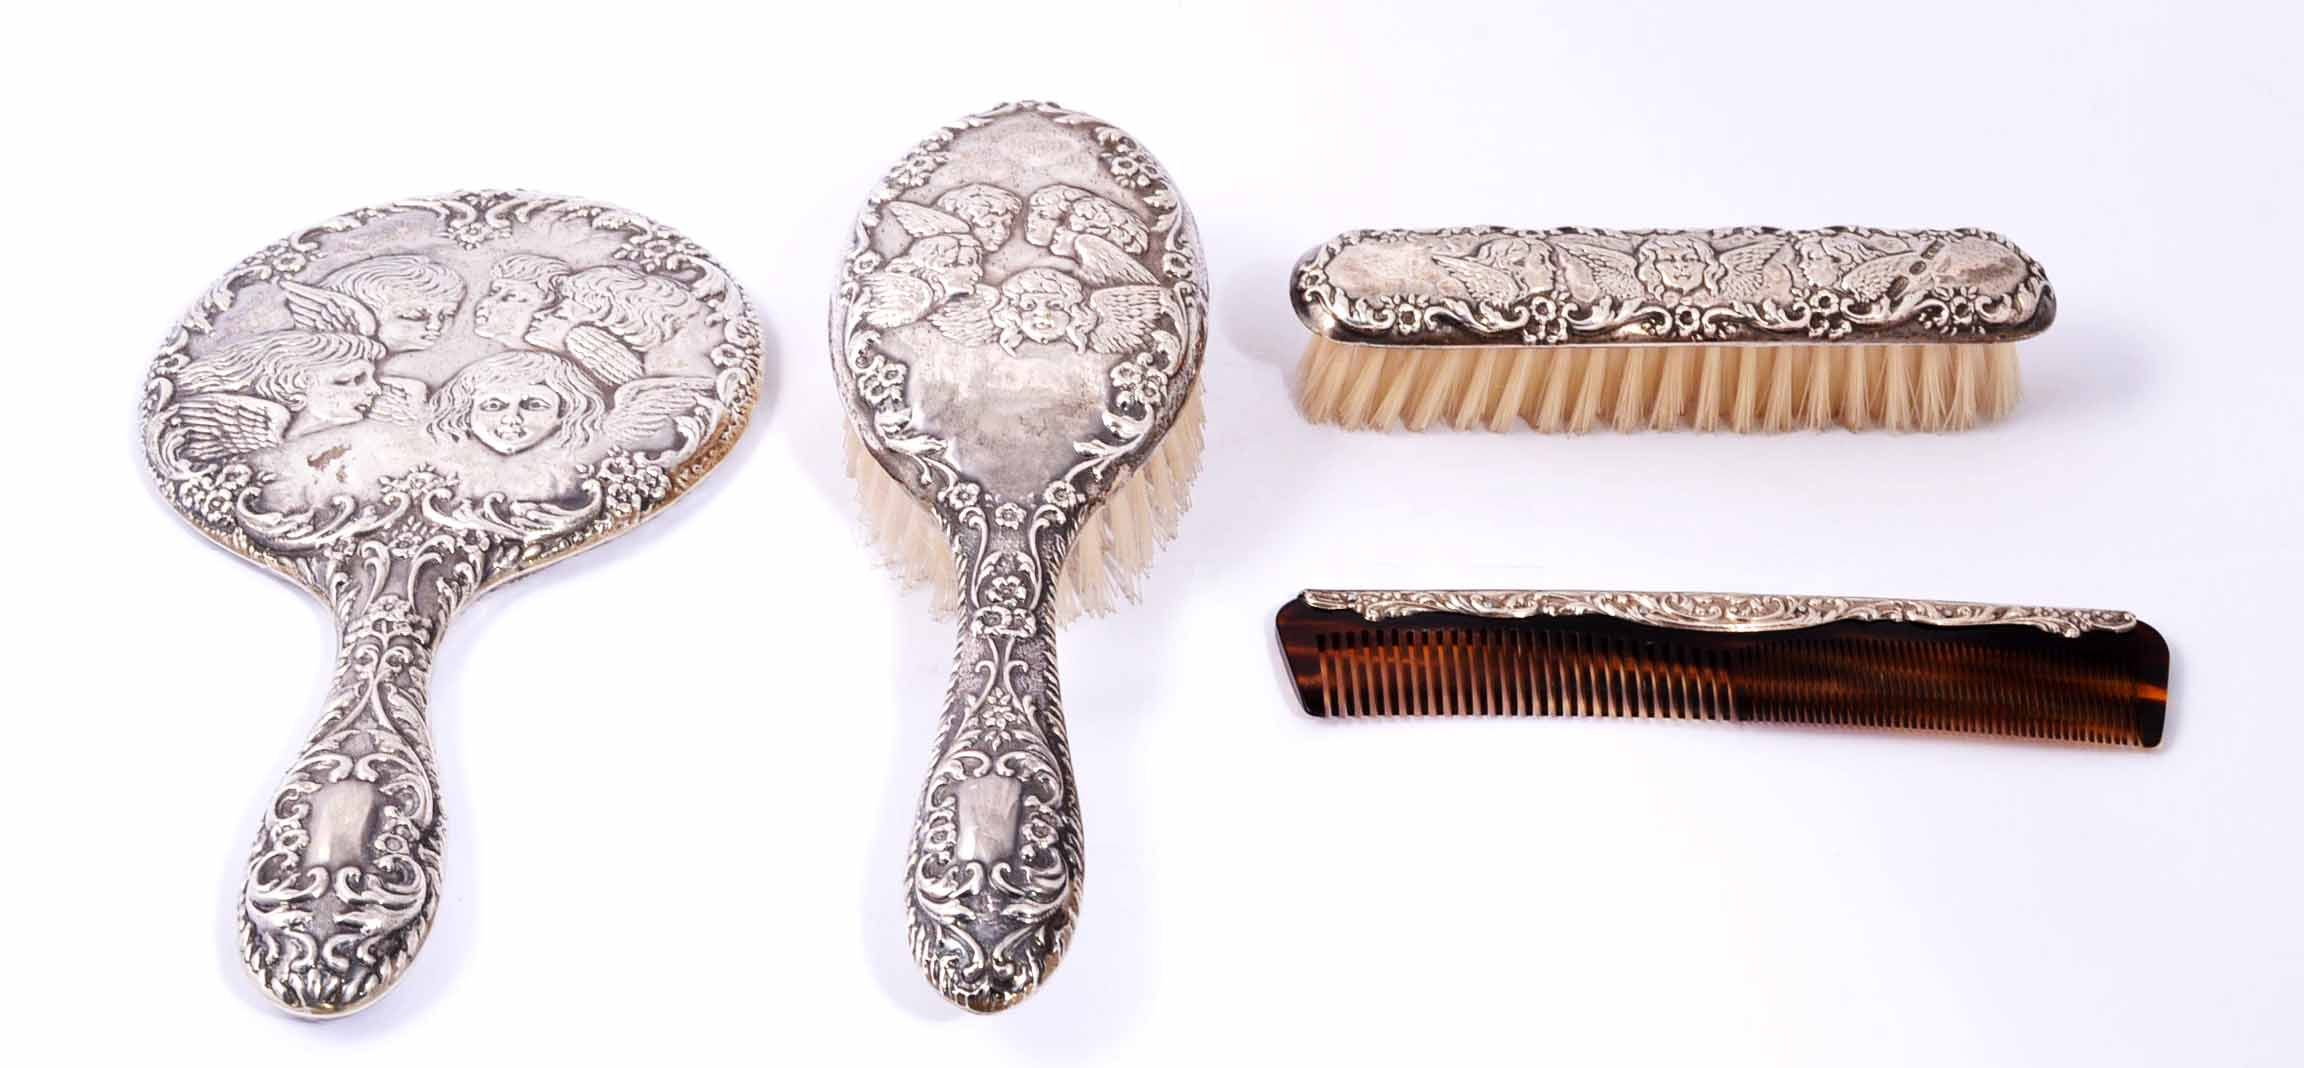 Antique Sterling Silver Cherubs Hand Mirror Brush Set Ref No 04195